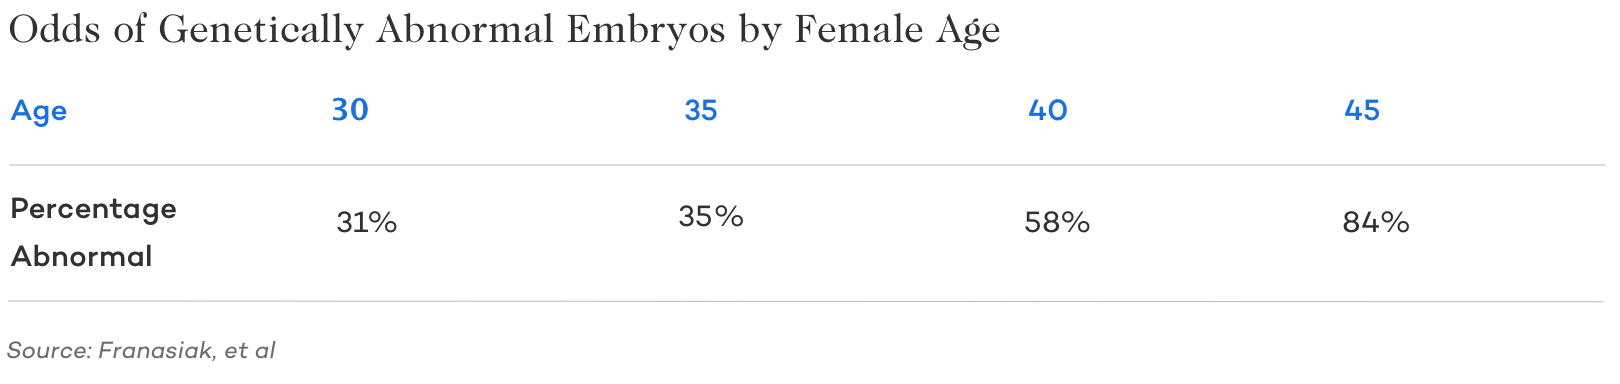 odds of genetically abnormal embryo by female age